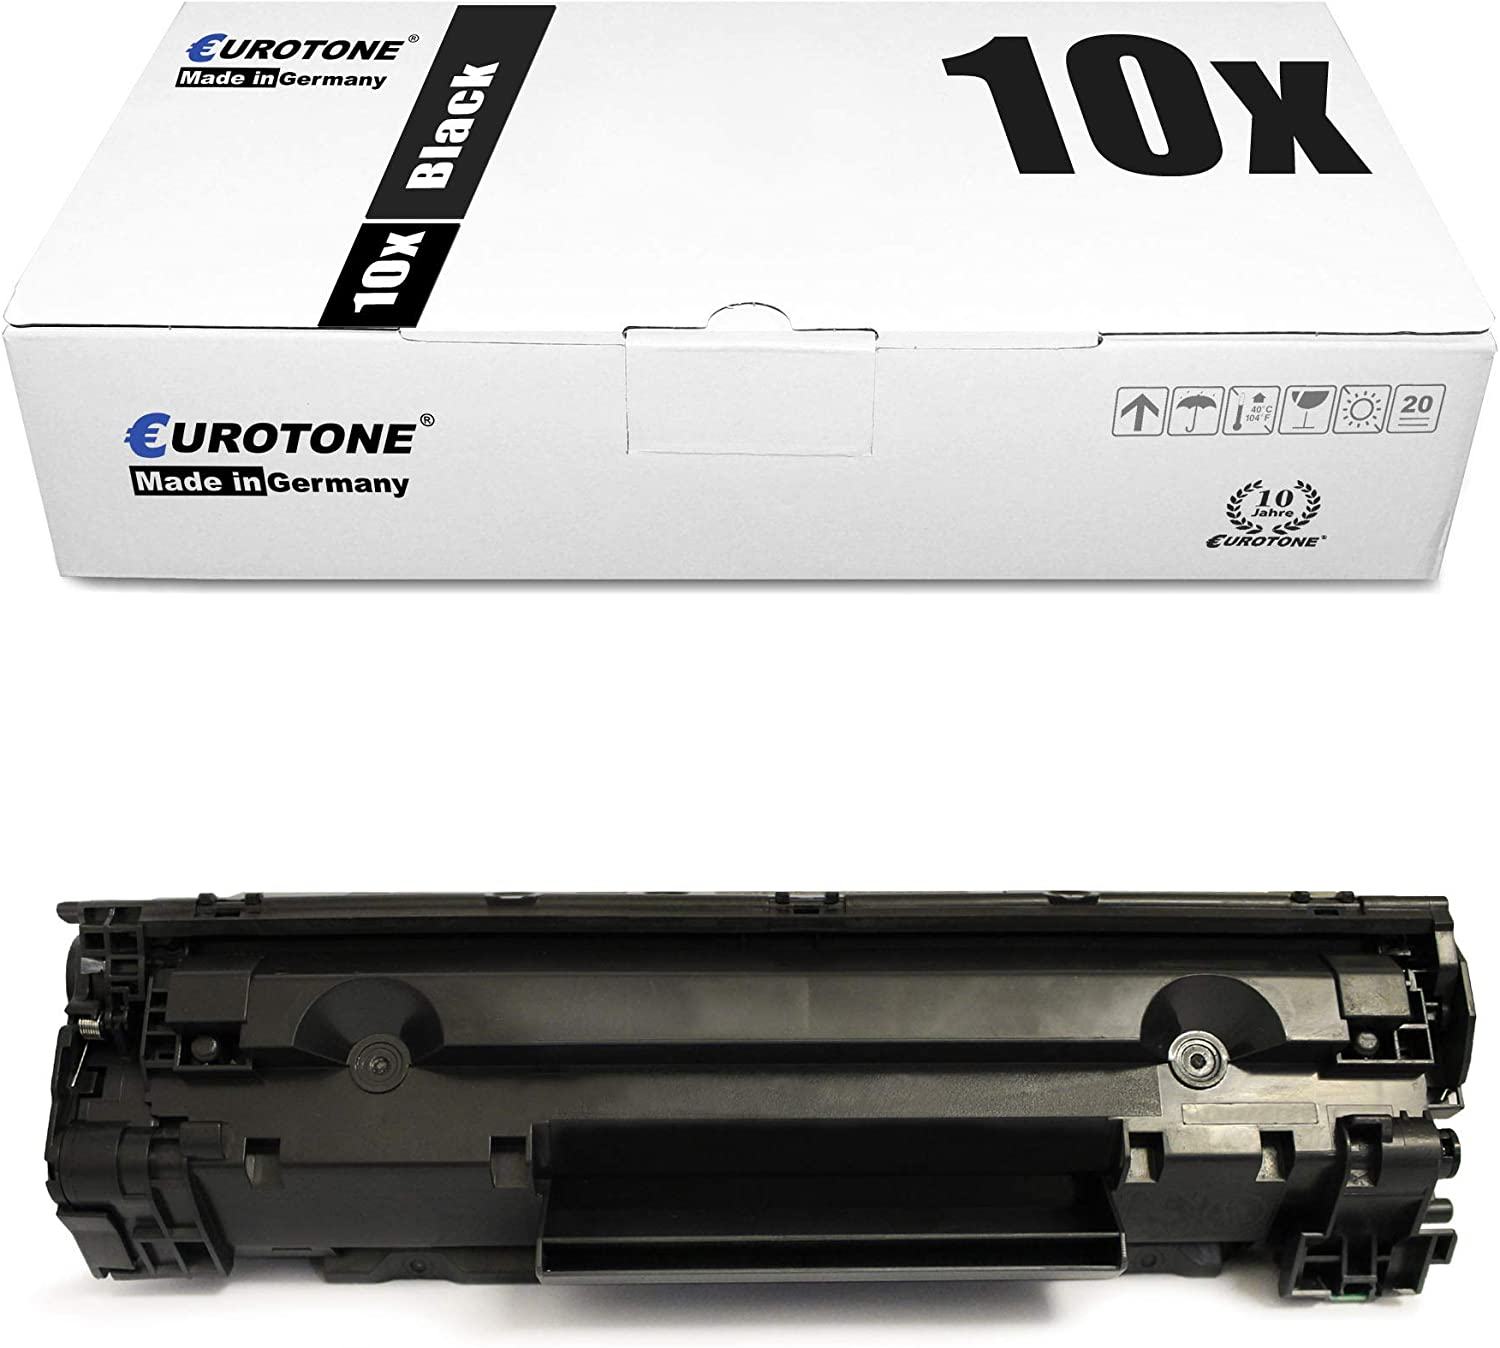 10x Eurotone Remanufactured Toner for HP Laserjet Pro MFP M 201 225 dw dn n Replaces CF283X 83X